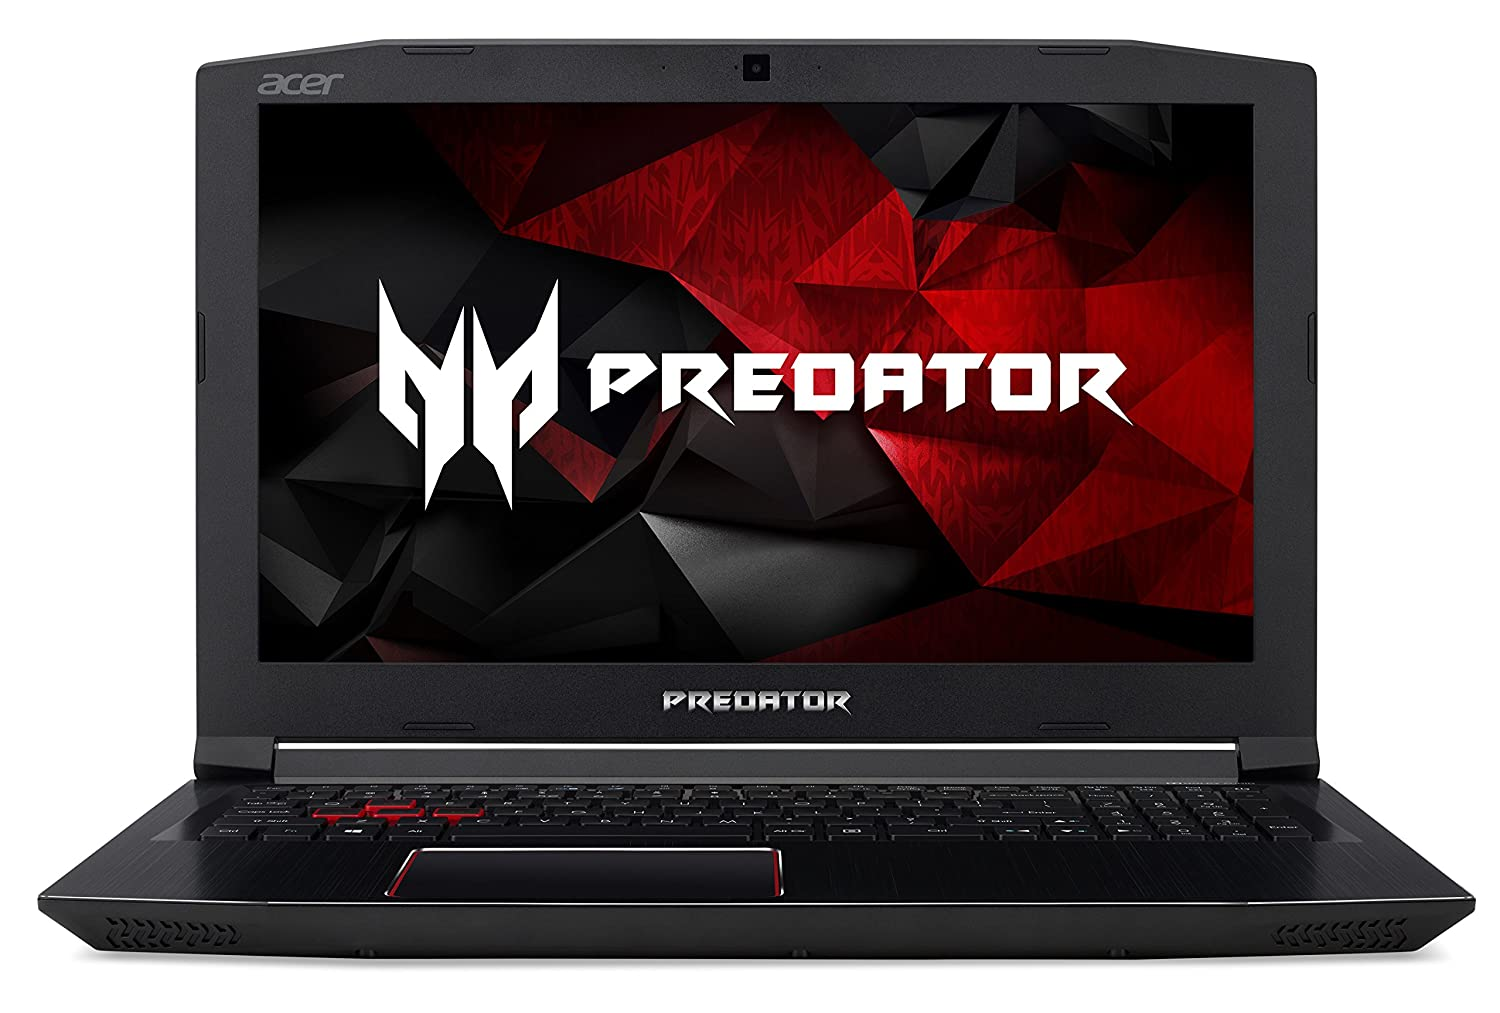 Amazon.com: Gaming Laptops: Electronics